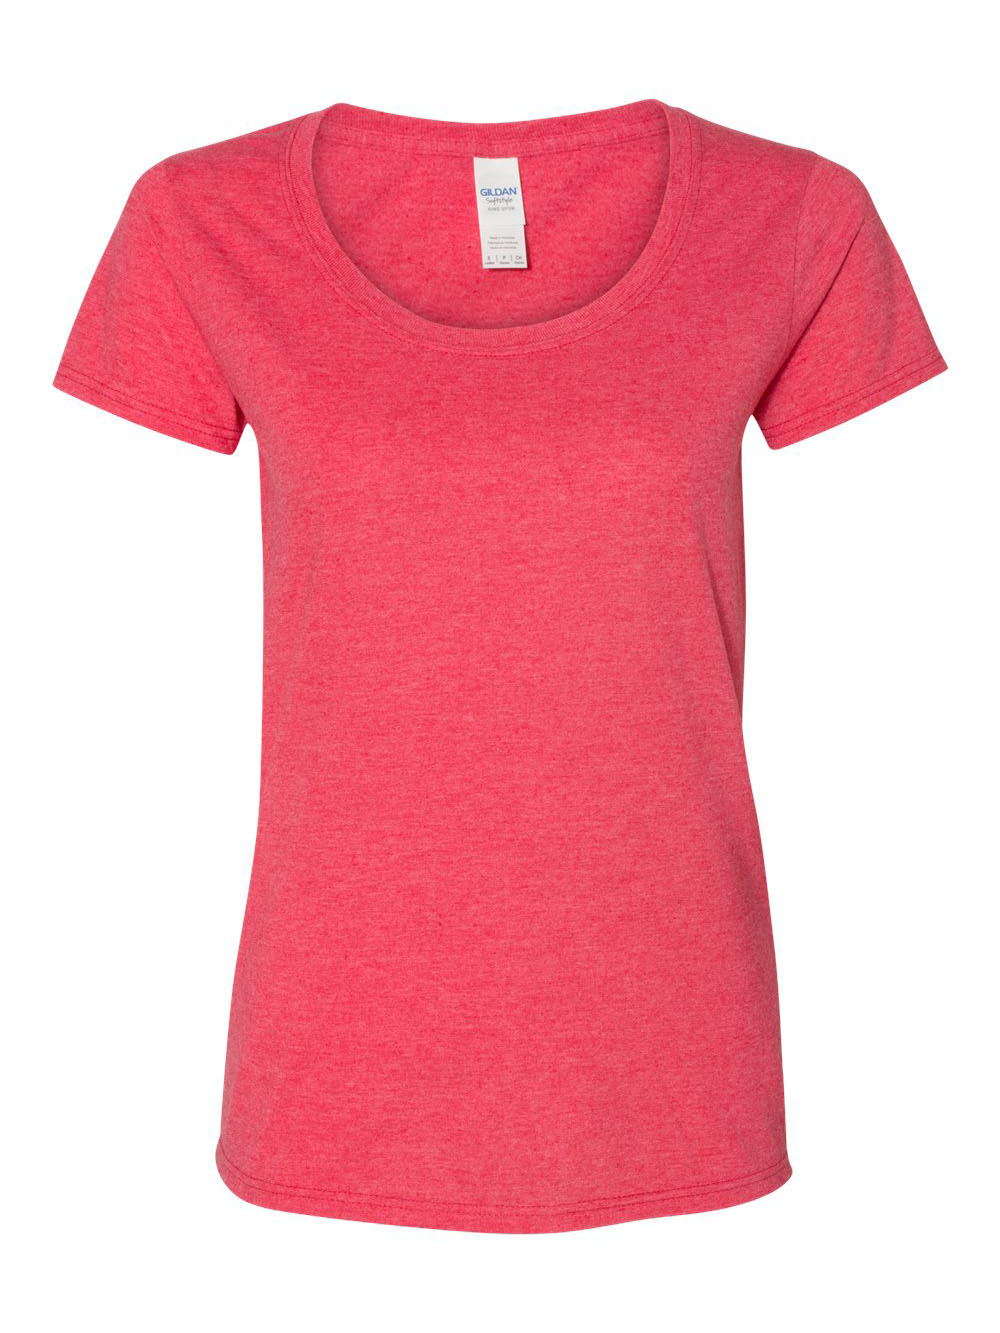 Gildan-Softstyle-Women-039-s-Deep-Scoopneck-T-Shirt-64550L thumbnail 30